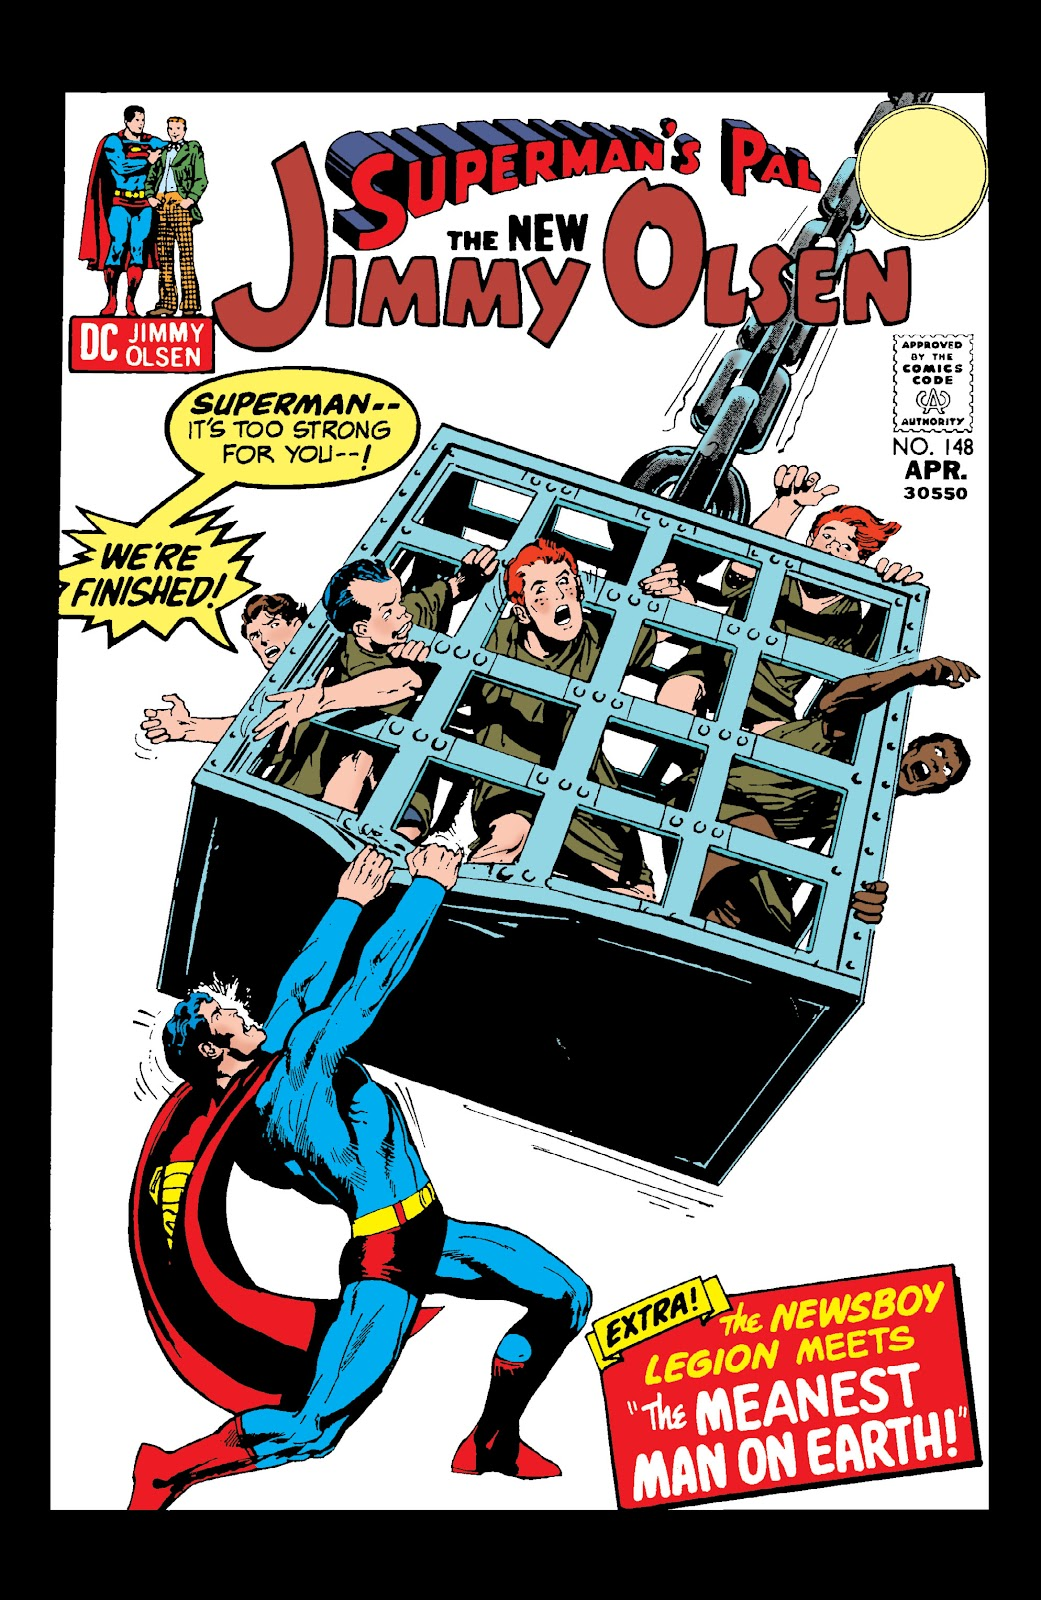 Read online Superman's Pal, Jimmy Olsen by Jack Kirby comic -  Issue # TPB (Part 4) - 36